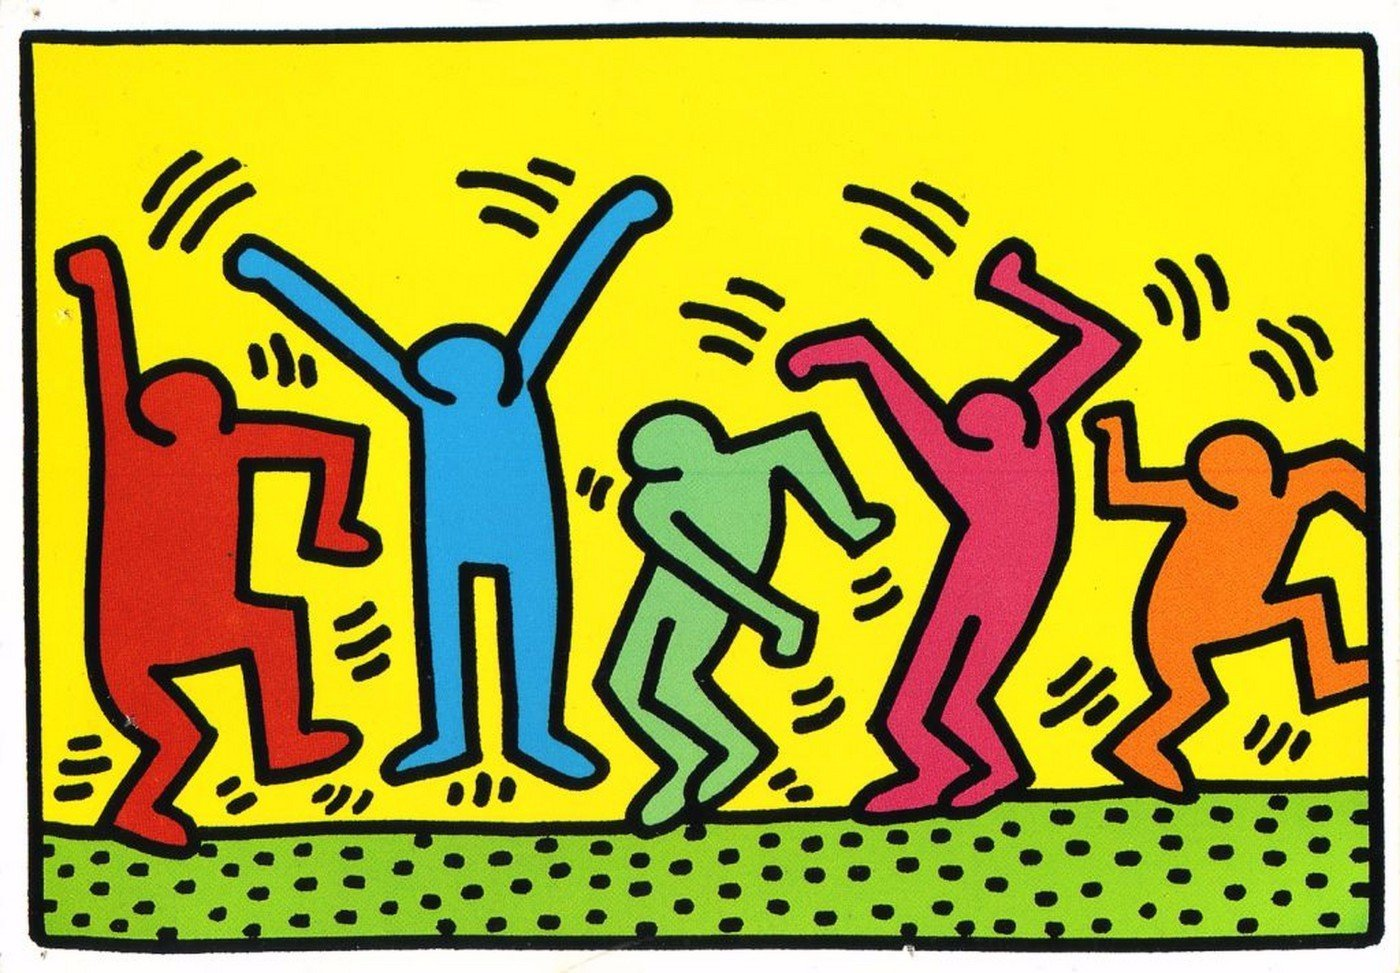 Dancing Figure - Large Art Prints by Keith Haring   Buy Posters ...